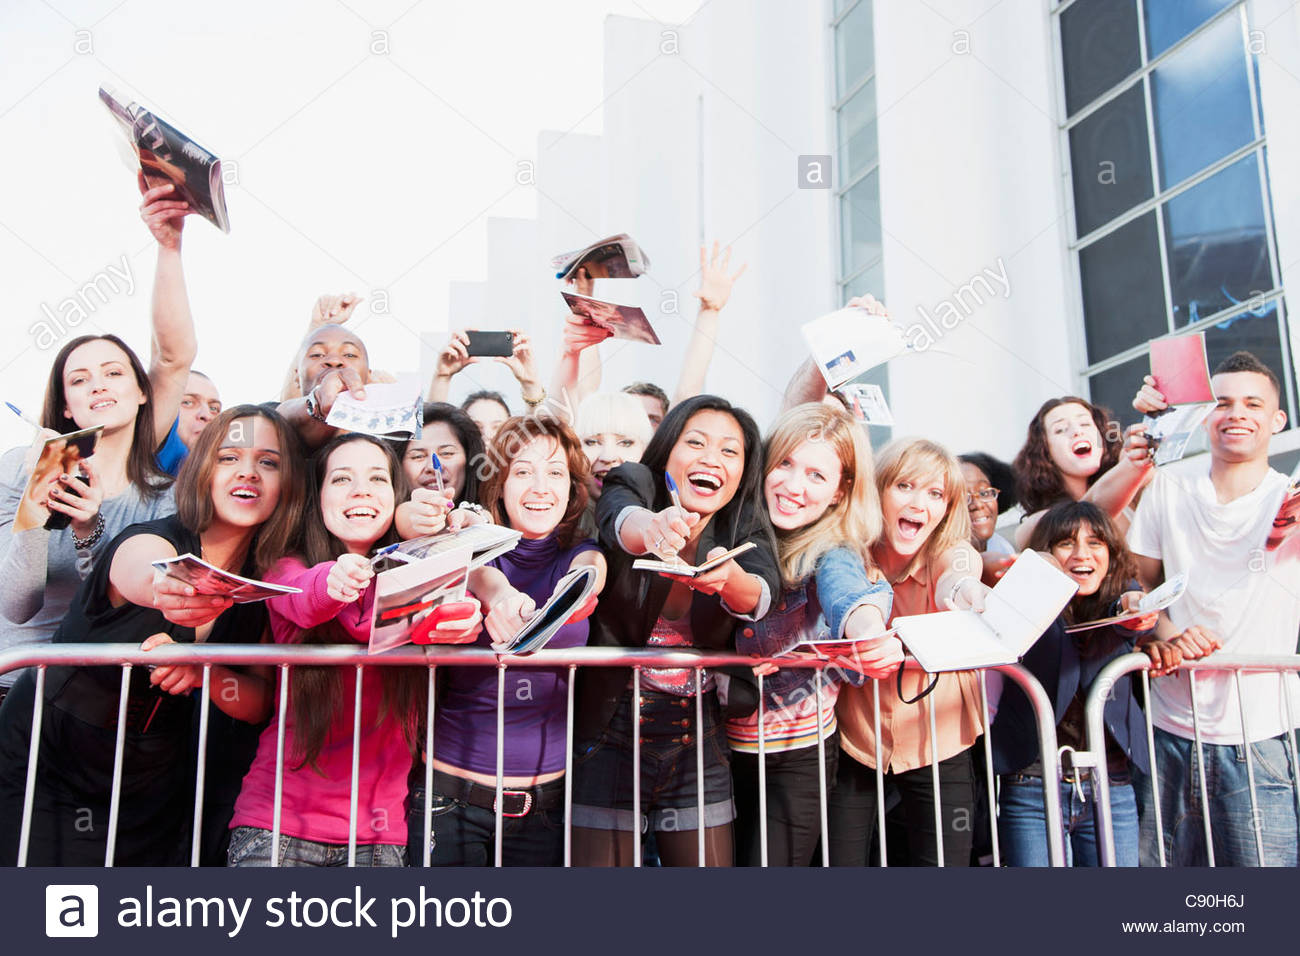 Fans asking for autographs behind barrier - Stock Image